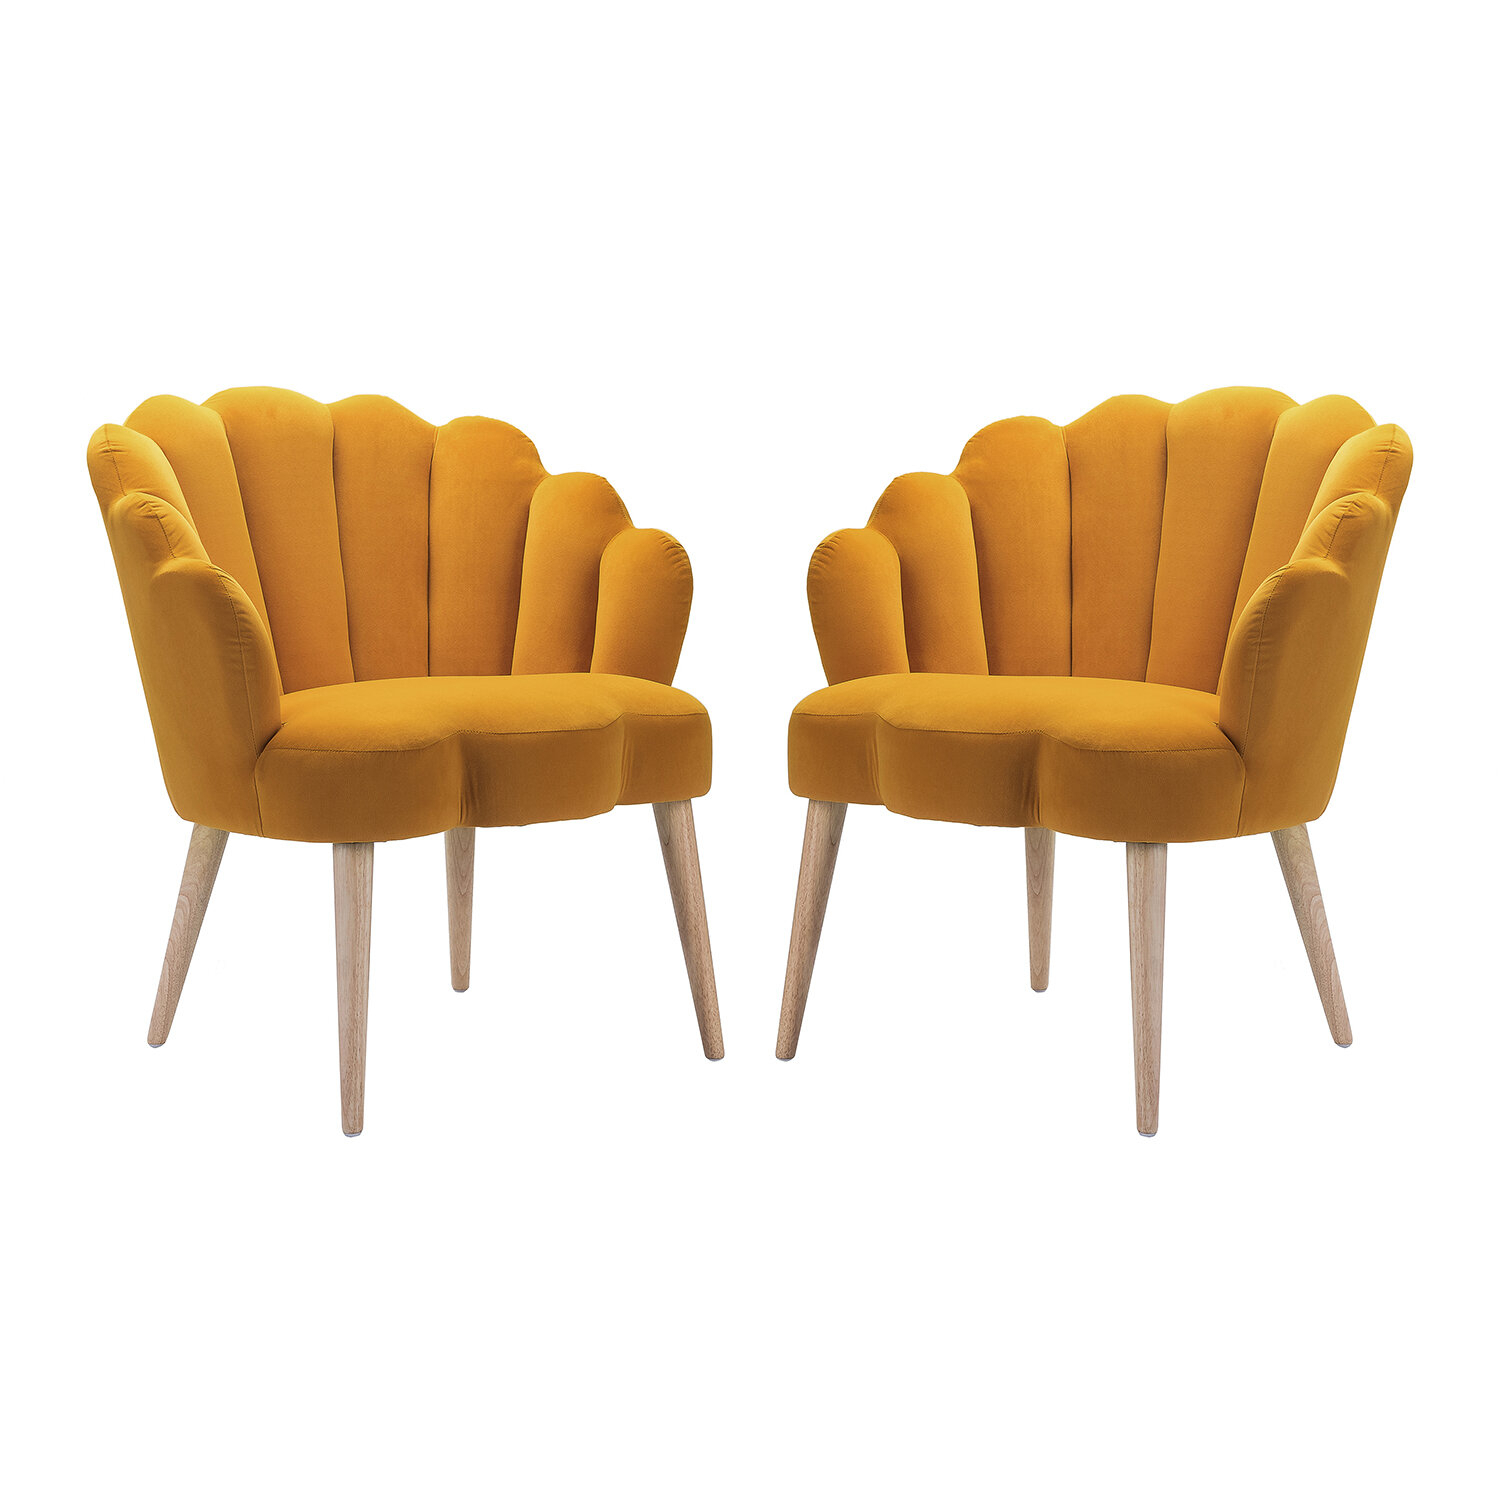 Barrel Yellow Accent Chairs You'Ll Love In 2021 | Wayfair For Danny Barrel Chairs (Set Of 2) (View 7 of 15)